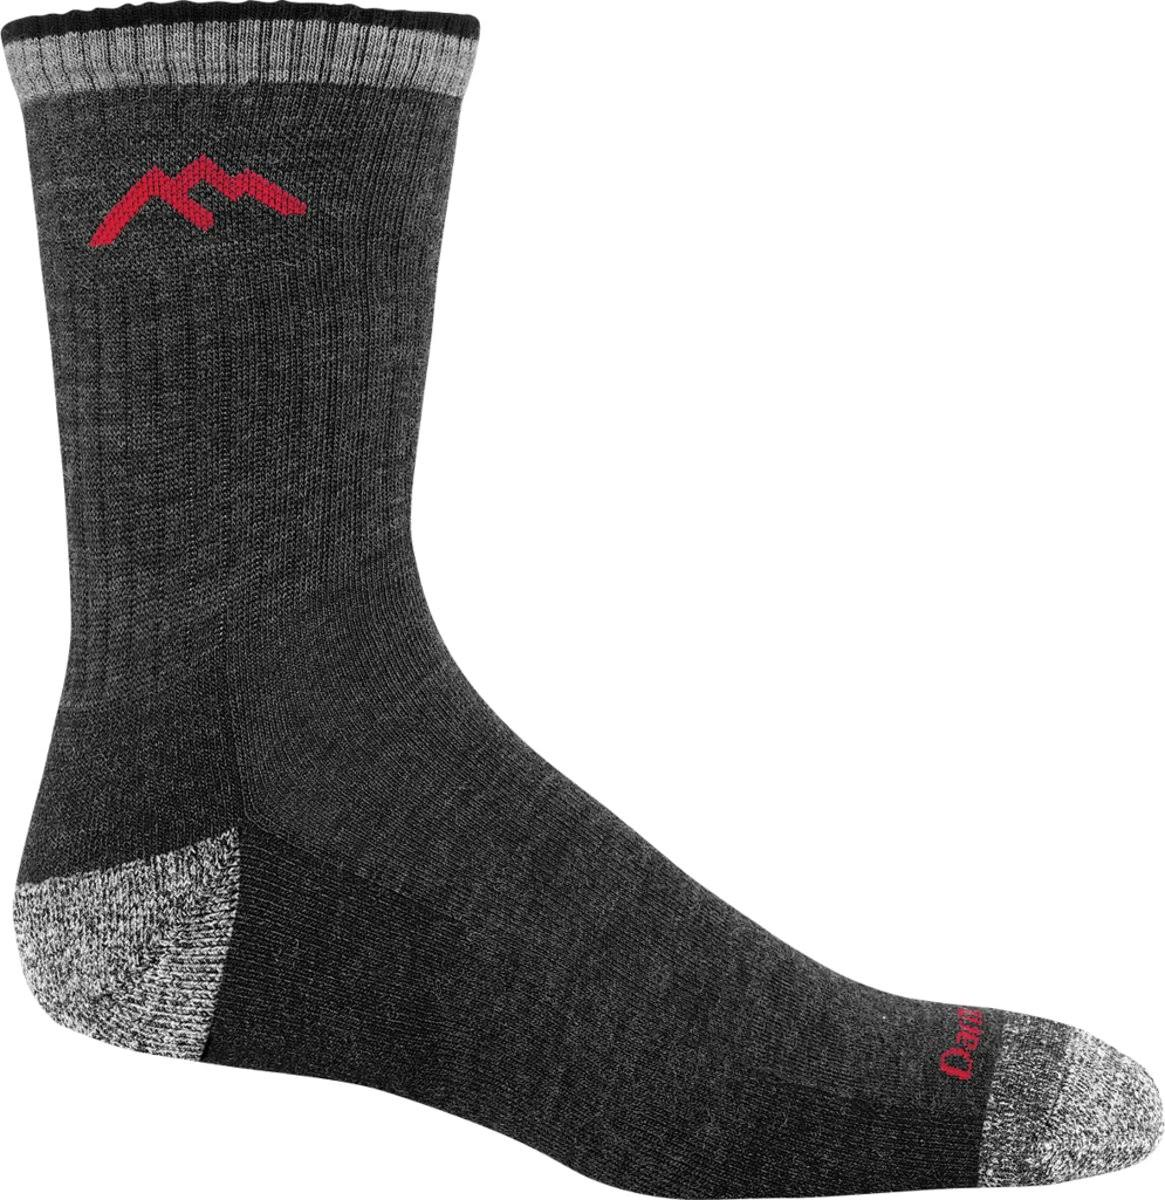 Darn Mens Tough Hiker Micro Crew Cushion Socks - Black, Medium